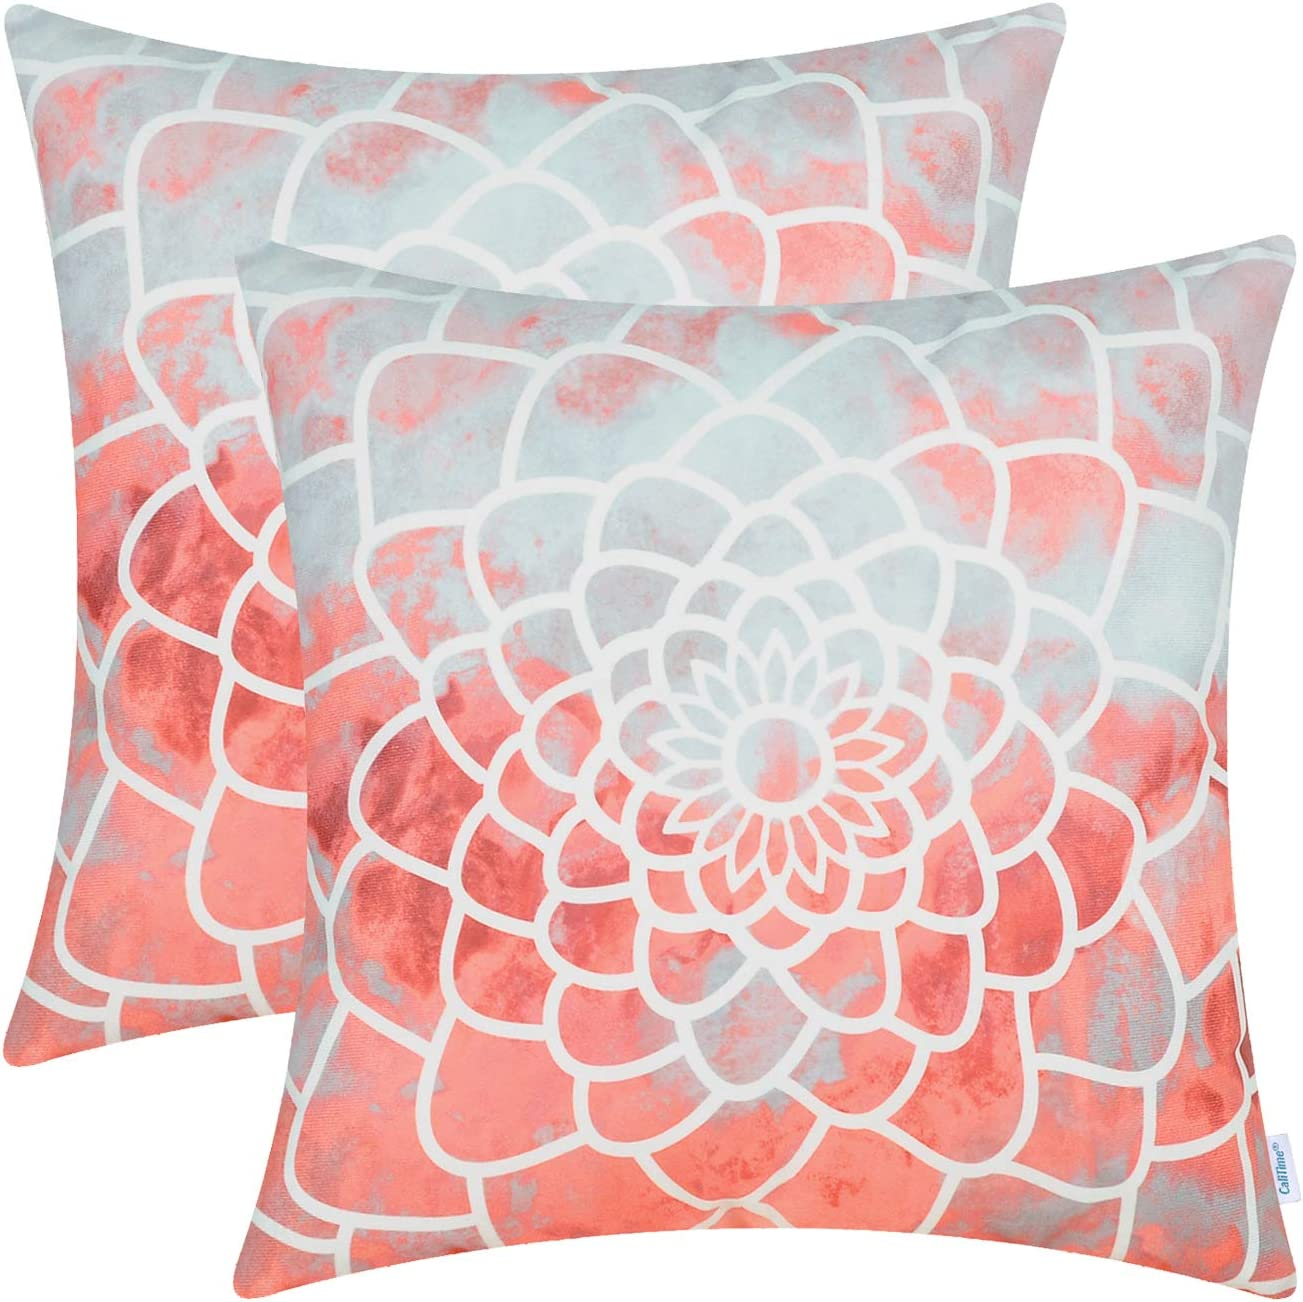 CaliTime Pack of 2 Cozy Fleece Throw Pillow Cases Covers for Couch Bed Sofa Manual Hand Painted Print Colorful Dahlia Compass 20 X 20 Inches Coral Pink